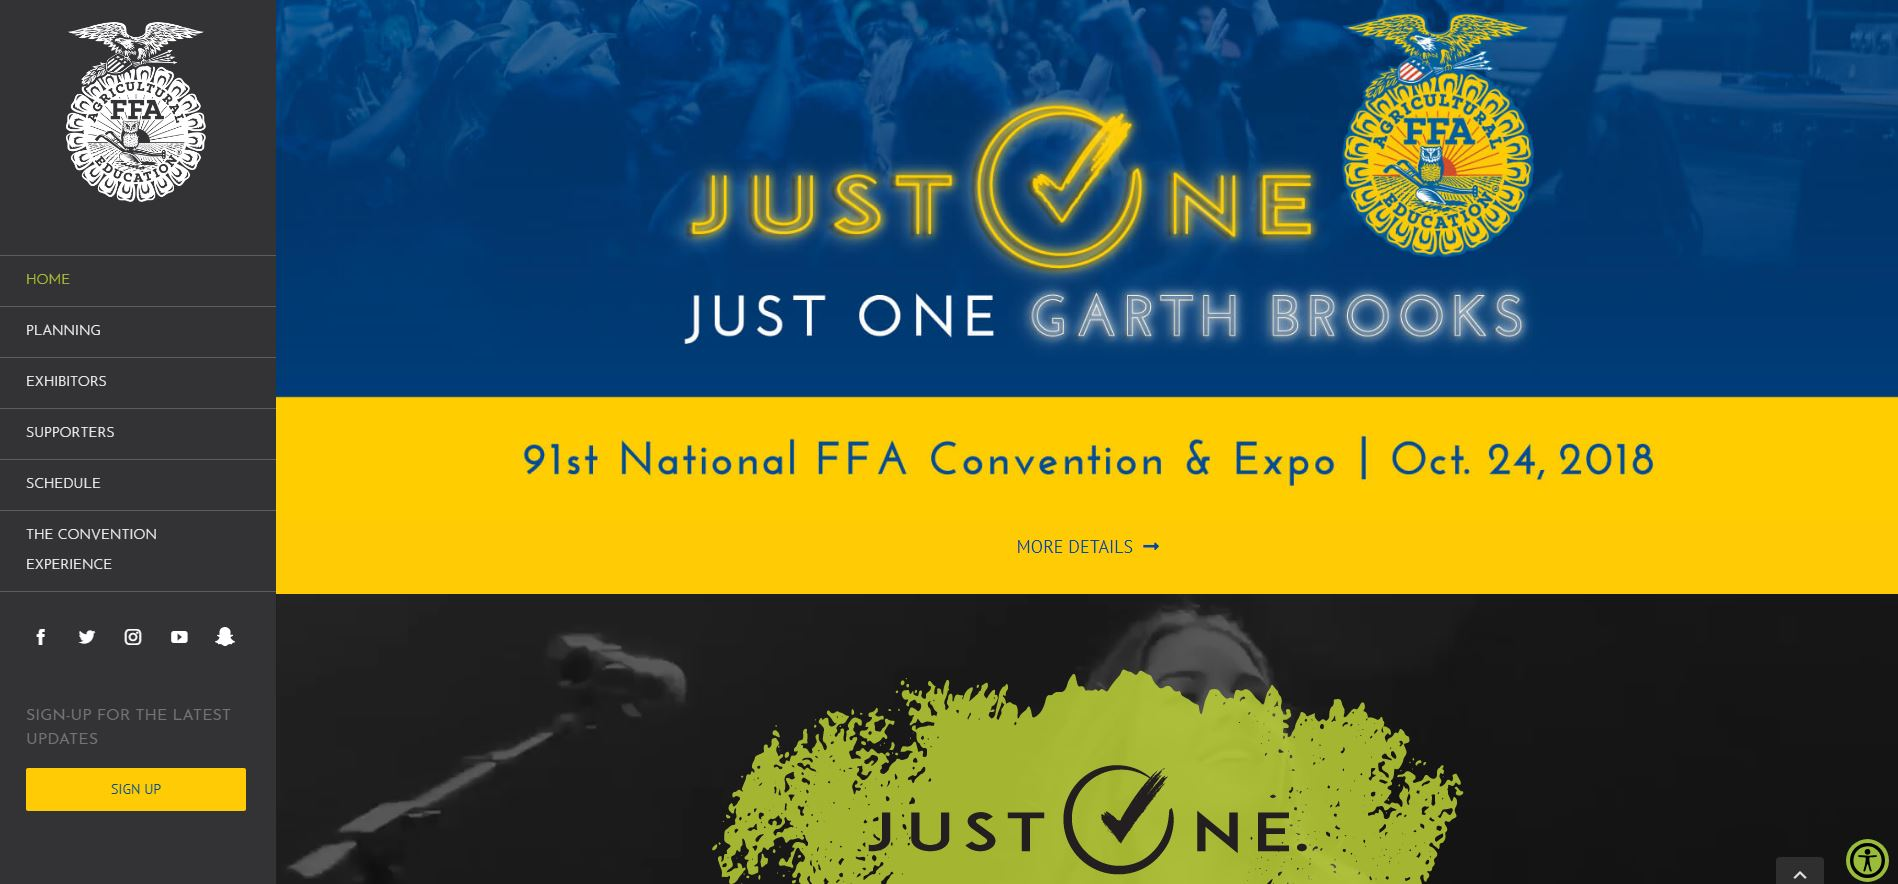 Garth-Brooks-Announces-Private-Concert-for-the-National-FFA-Organization